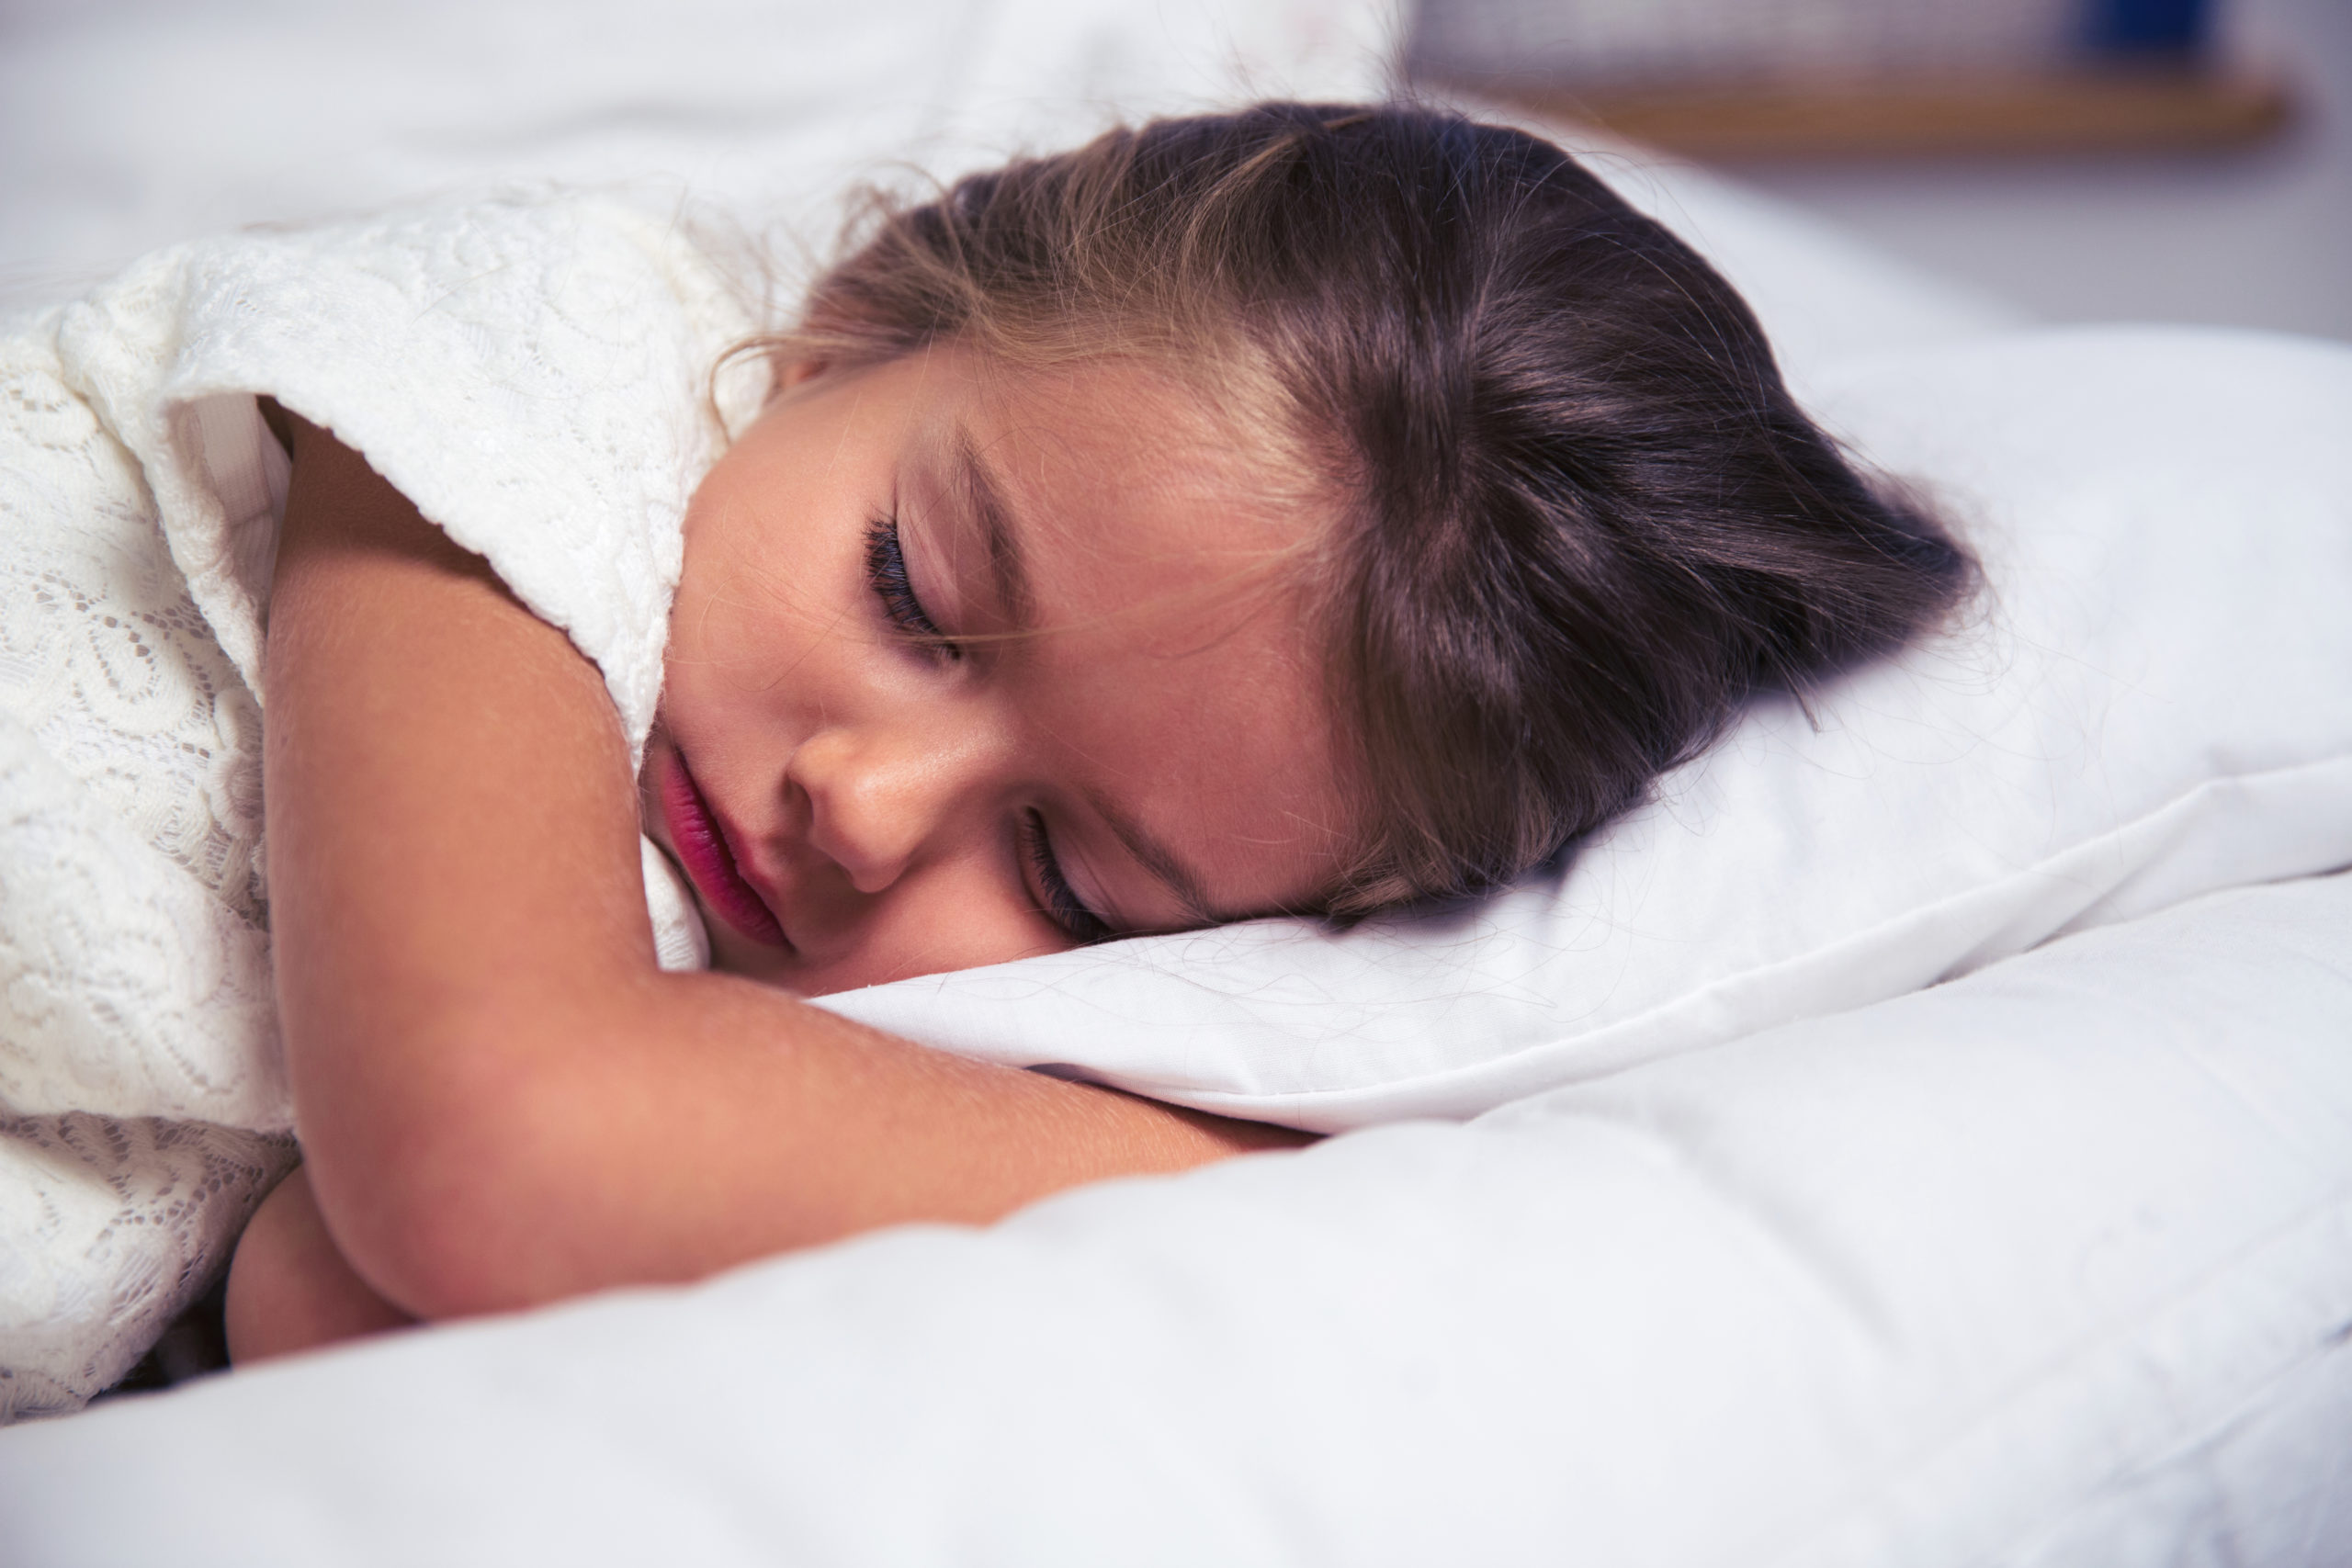 Little girl sleeping in bed with night terrors